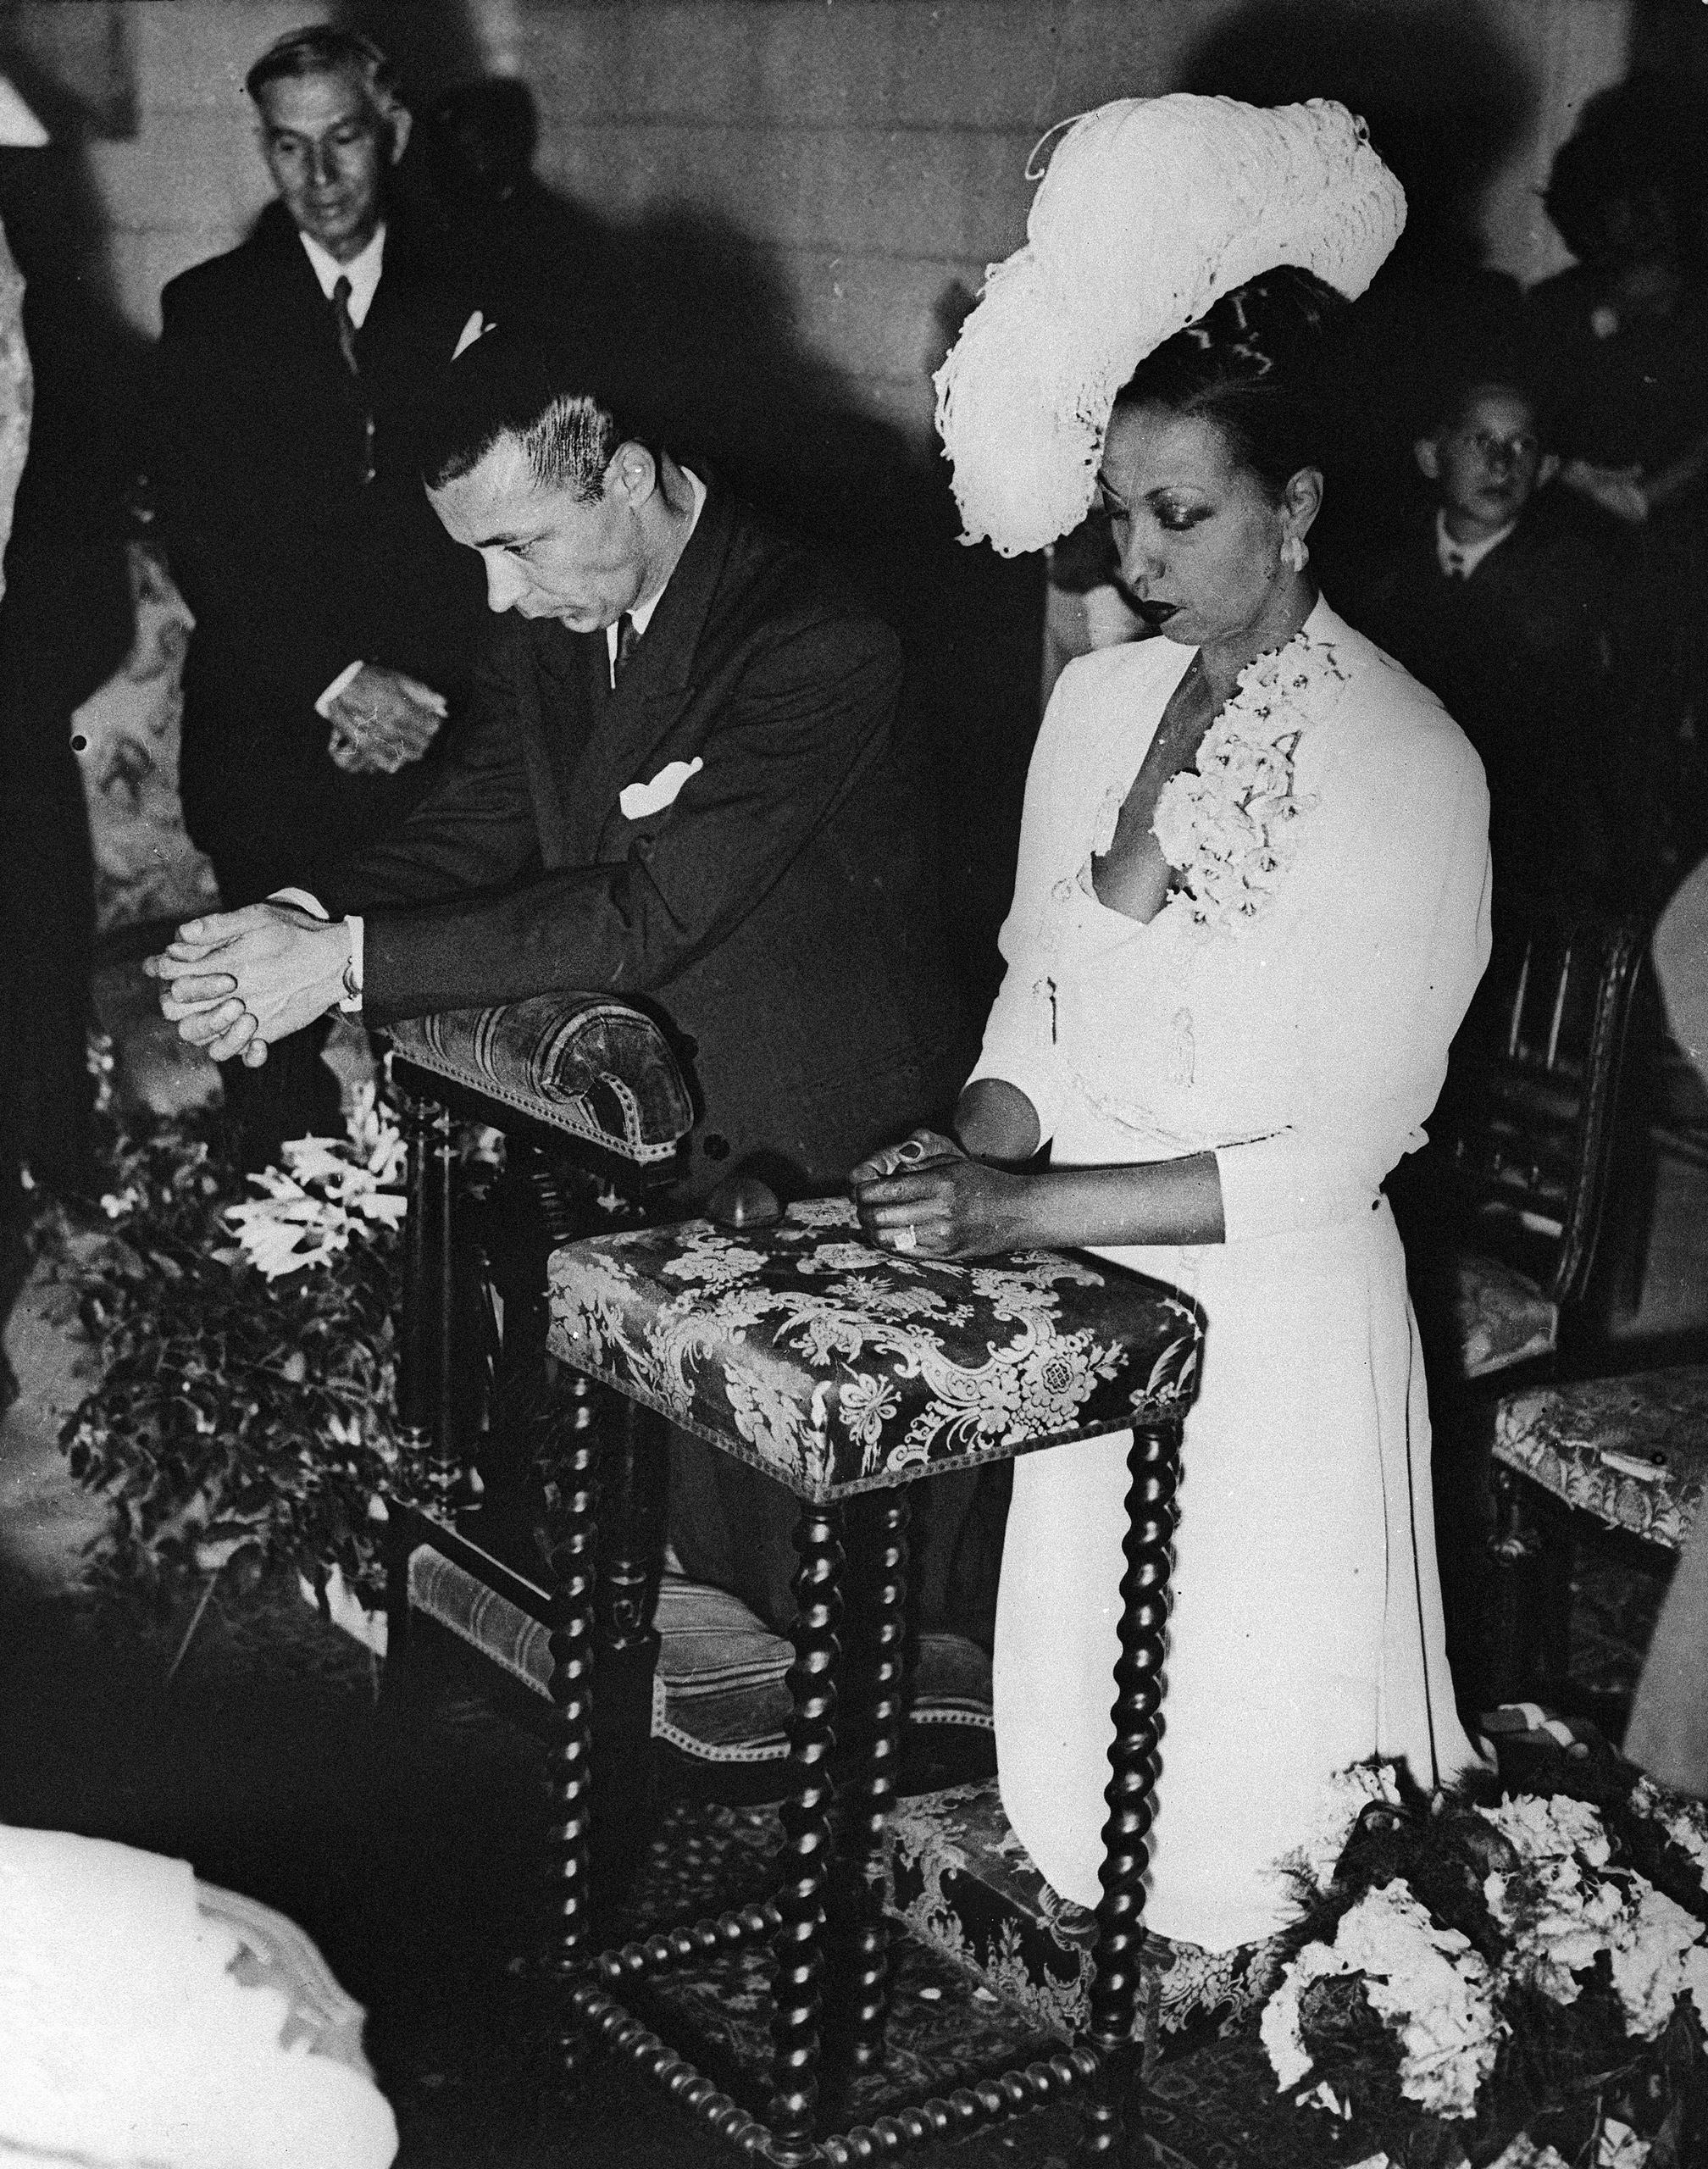 Josephine Baker and Jo Bouillon are seen June 5, 1947, during their marriage ceremony at her home, Chateau des Milandes, near St. Cyprien in southern France.